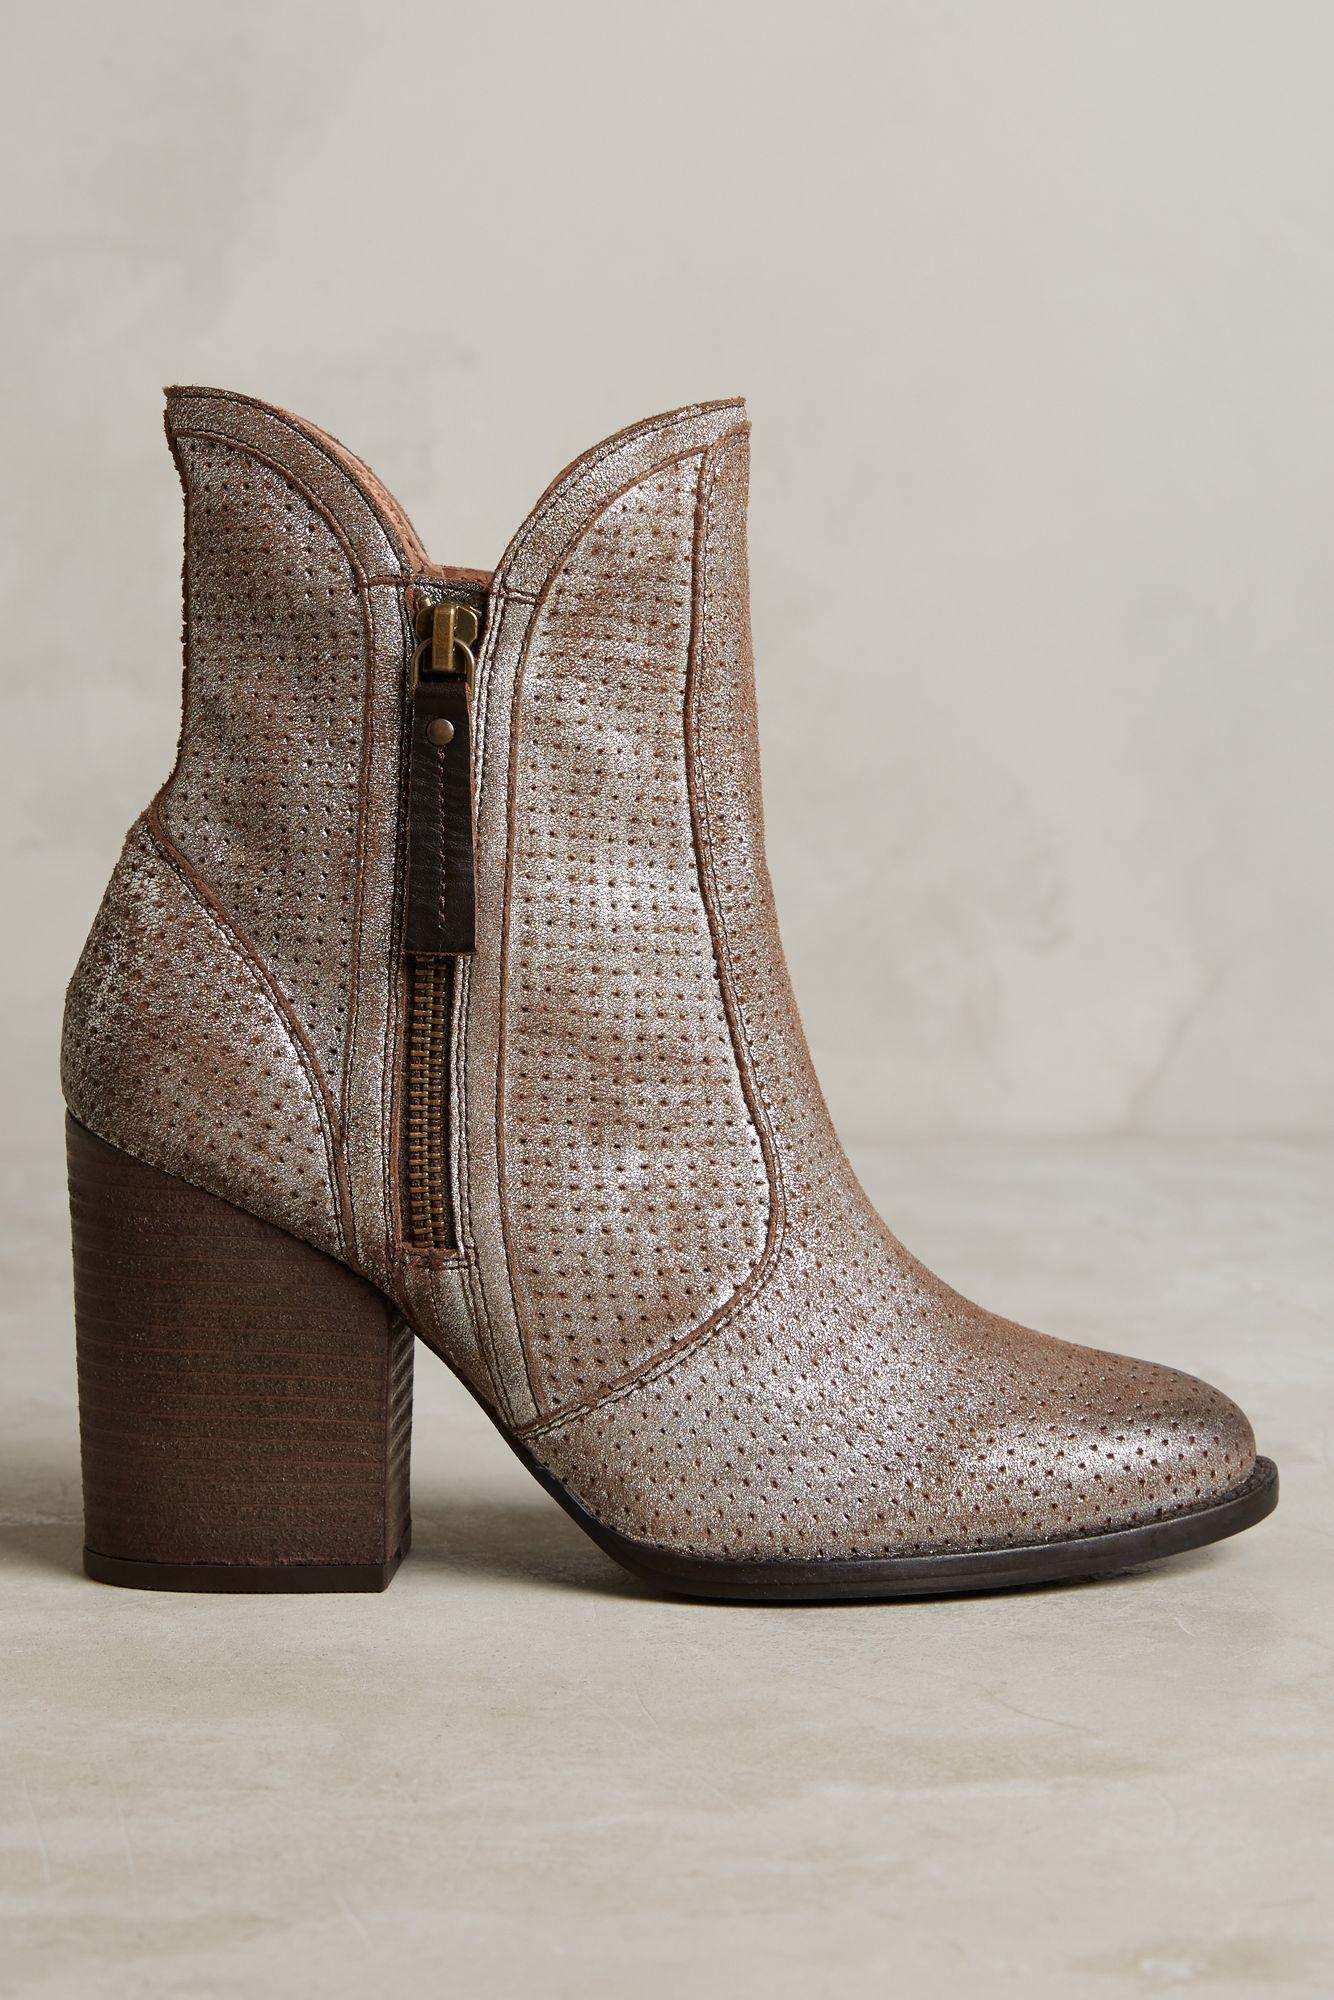 Anthropologie Seychelles Around The World Boots Lyst - Where is seychelles in the world